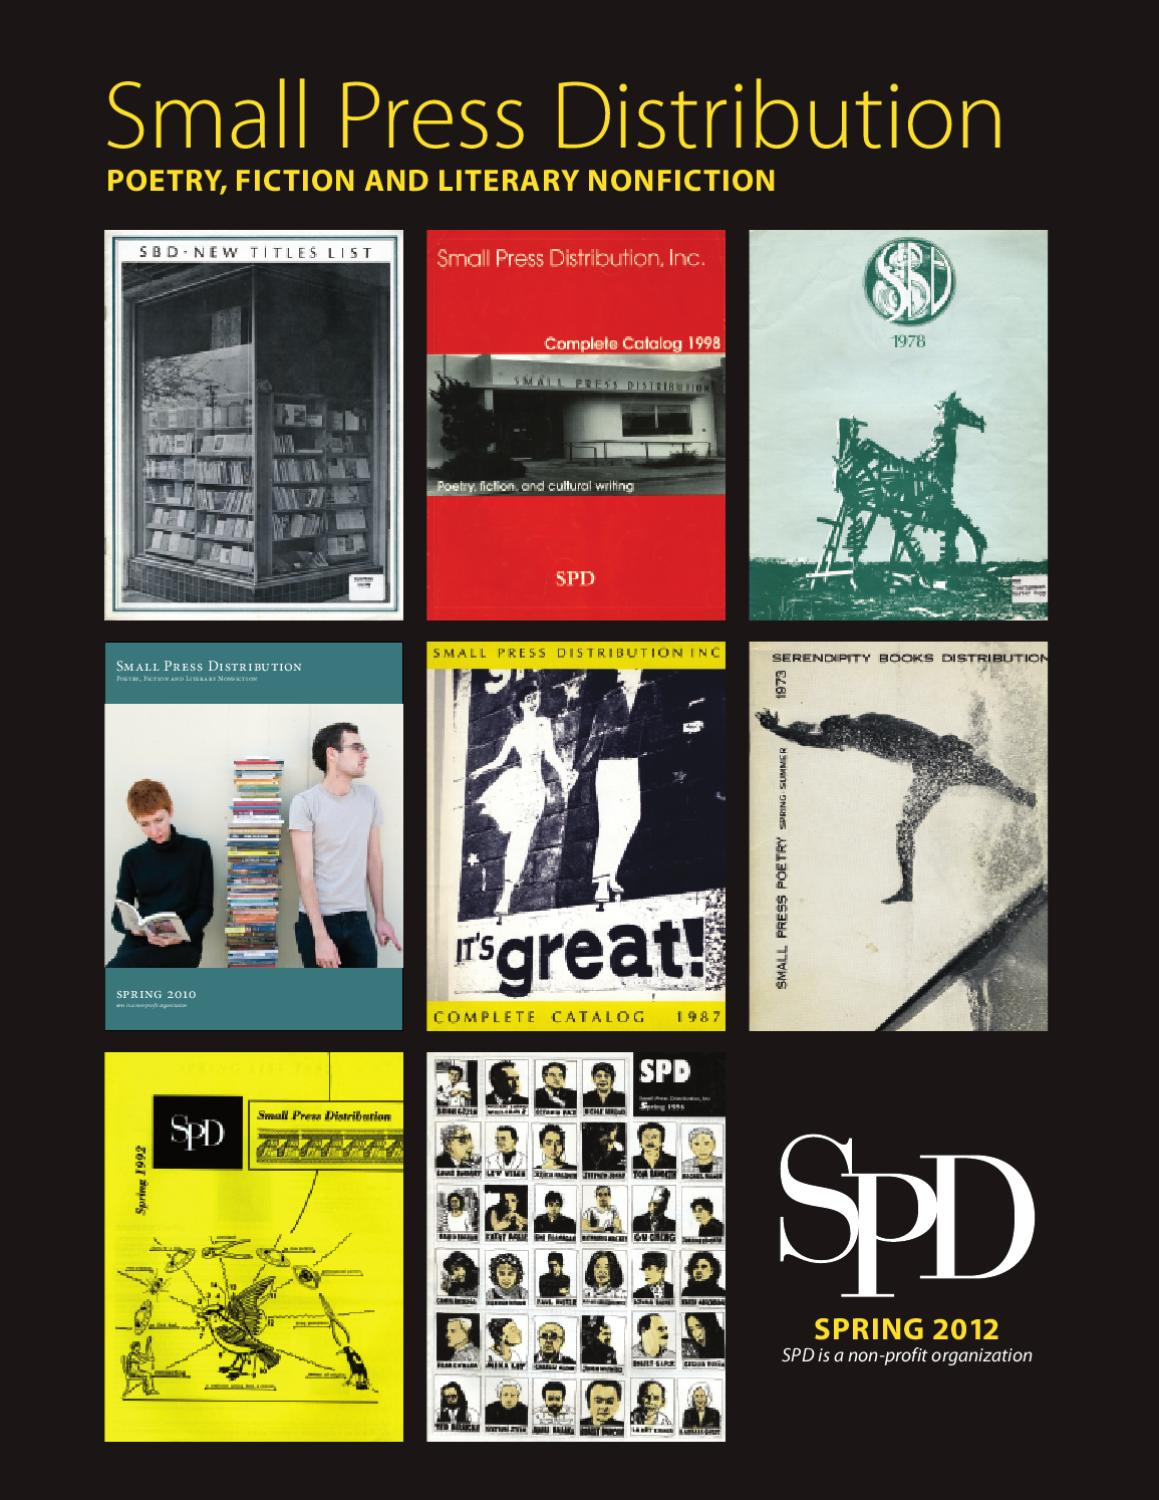 Spd Spring 2012 Print Catalog By Small Press Distribution Issuu Test Repair Job On Electronic Printed Circuit Board Ew Chee Guan